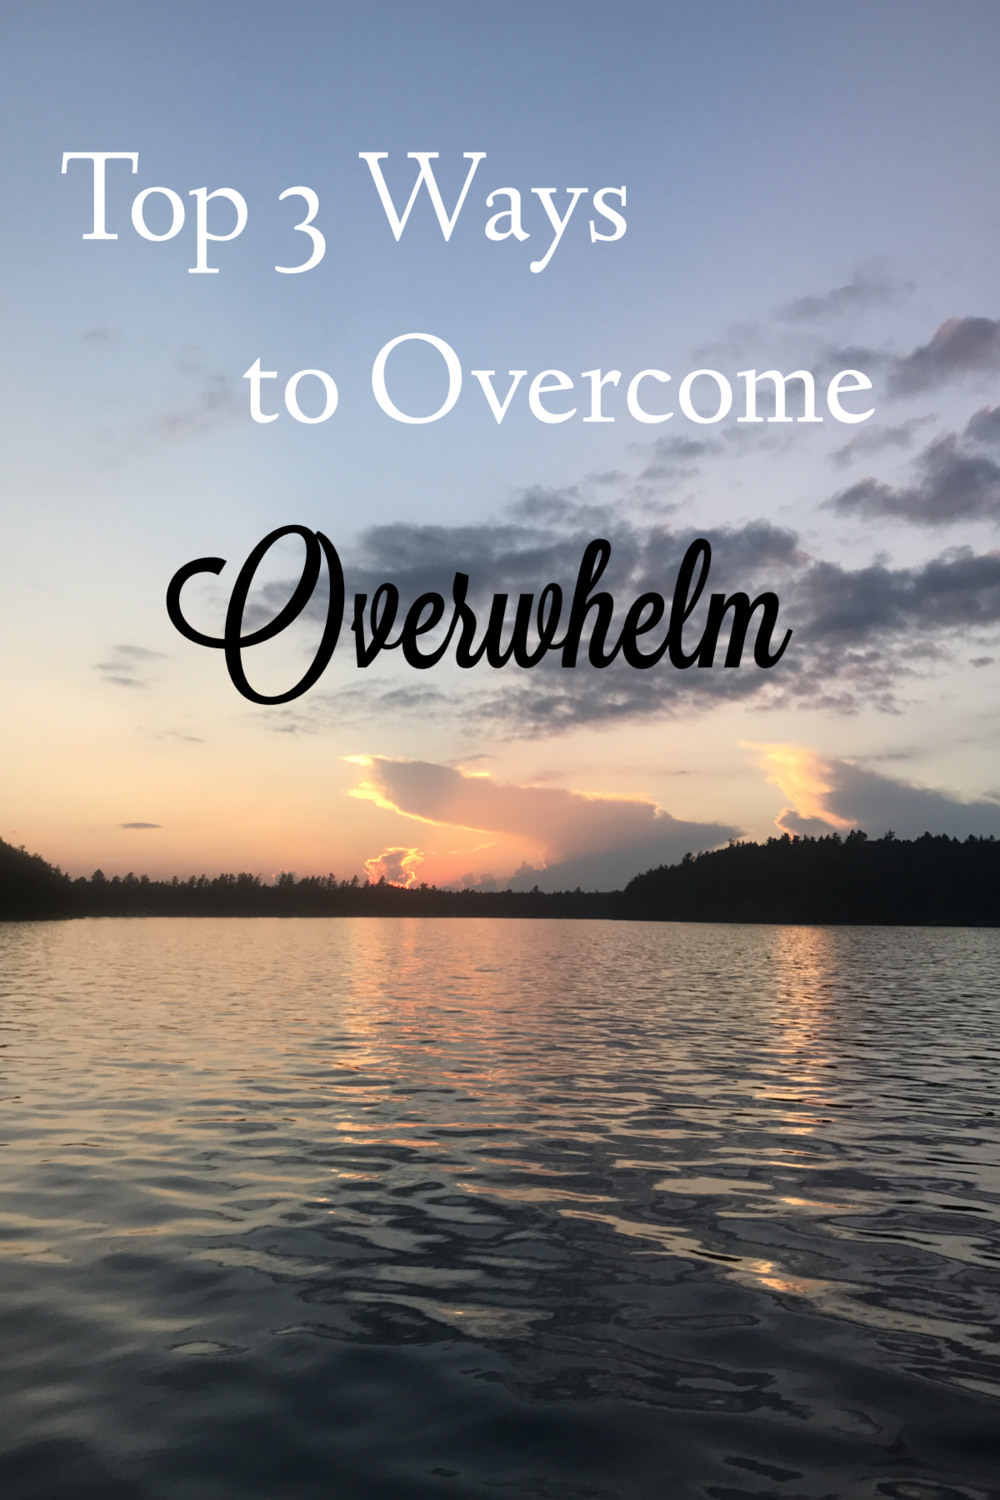 Top 3 Ways to Overcome Overwhelm